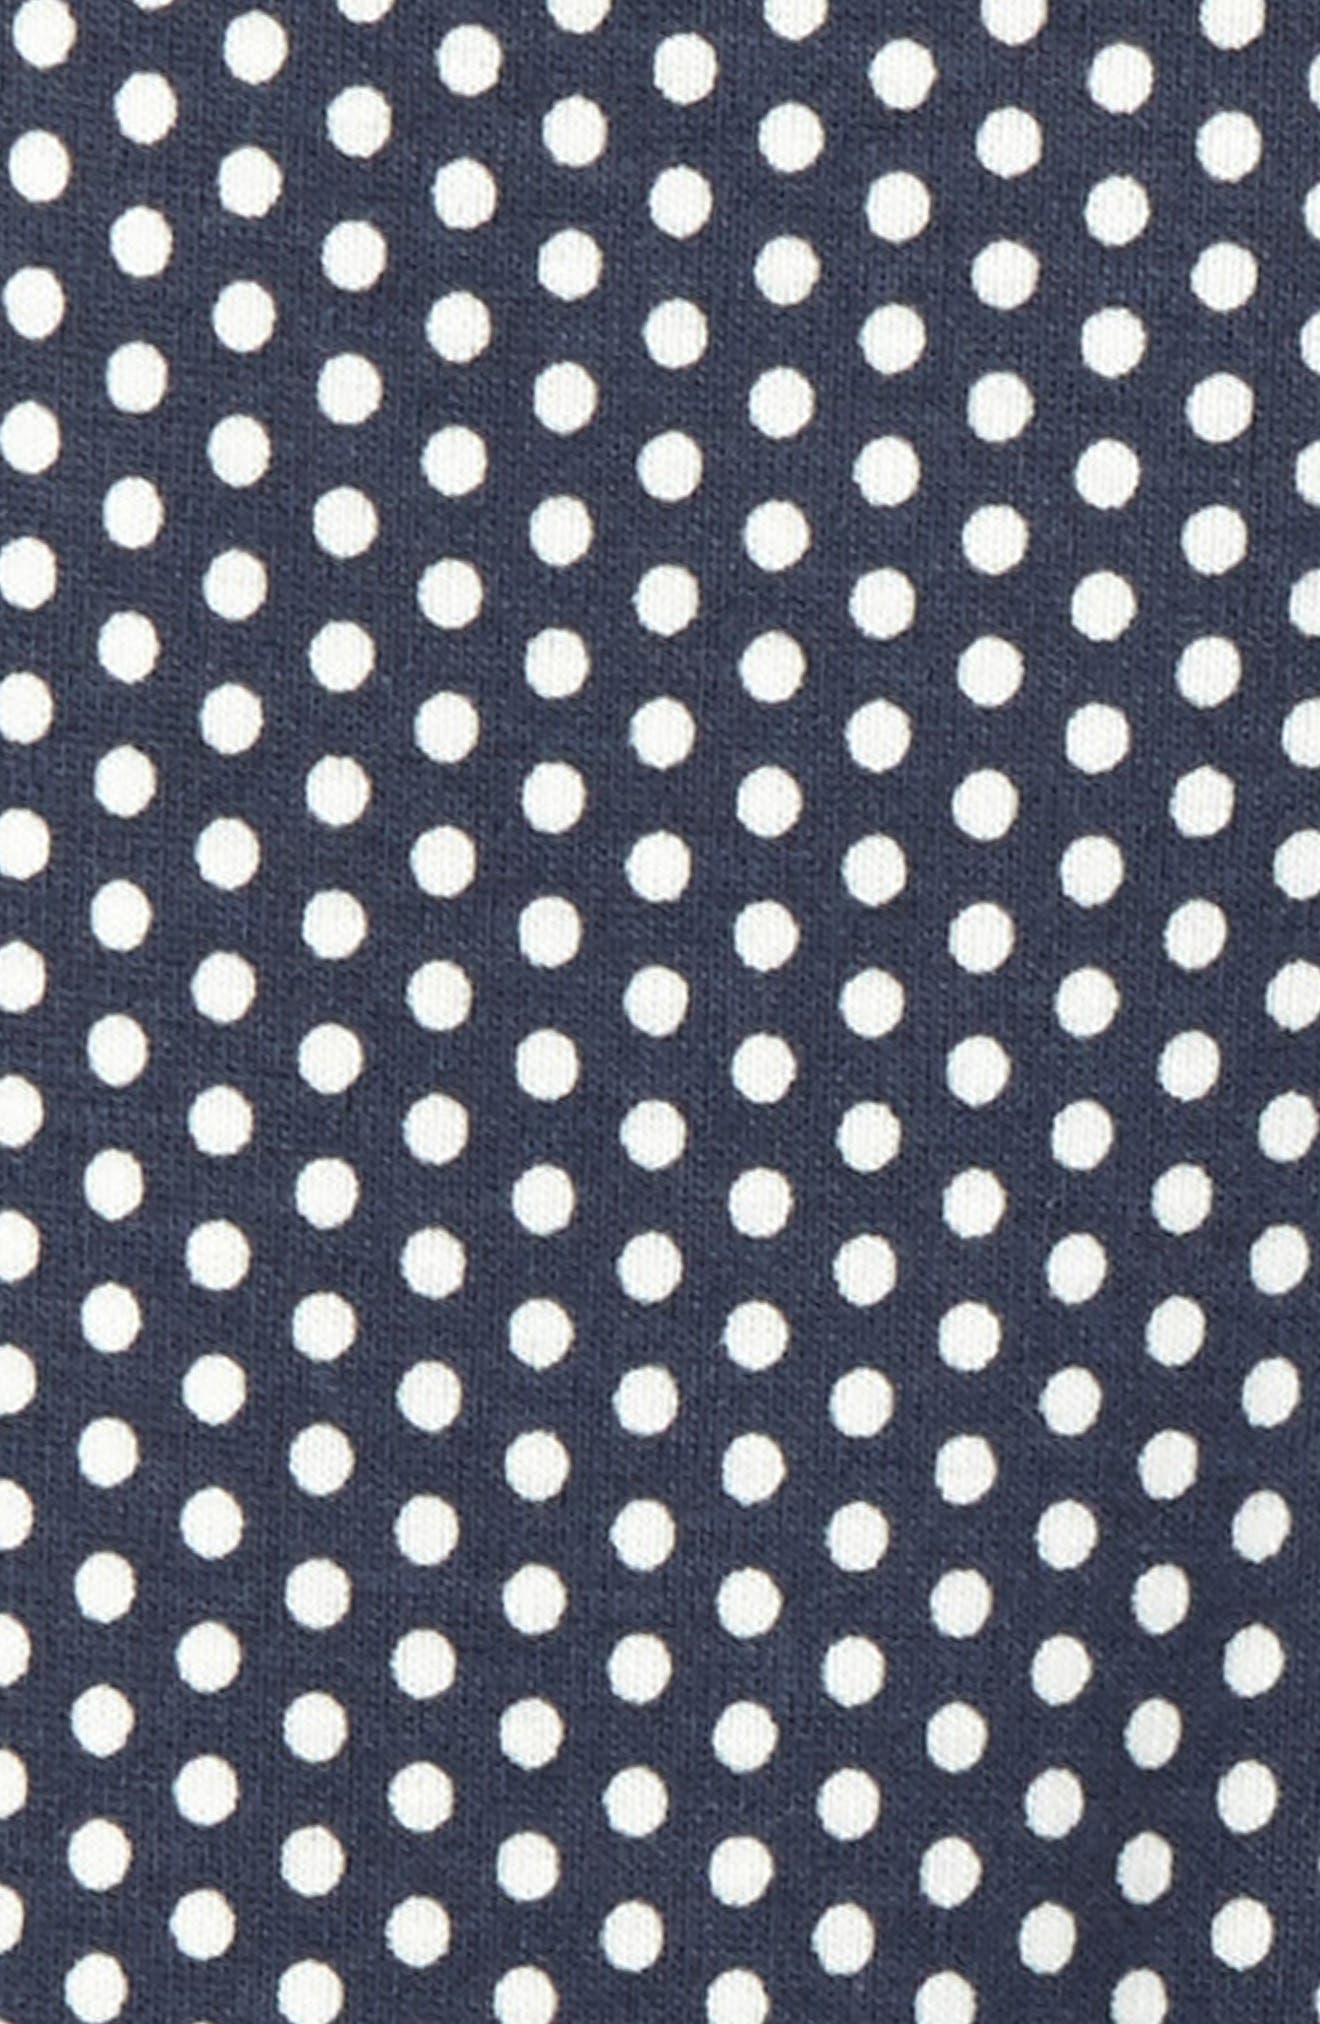 Polka Dot Leggings,                             Alternate thumbnail 2, color,                             Indigo